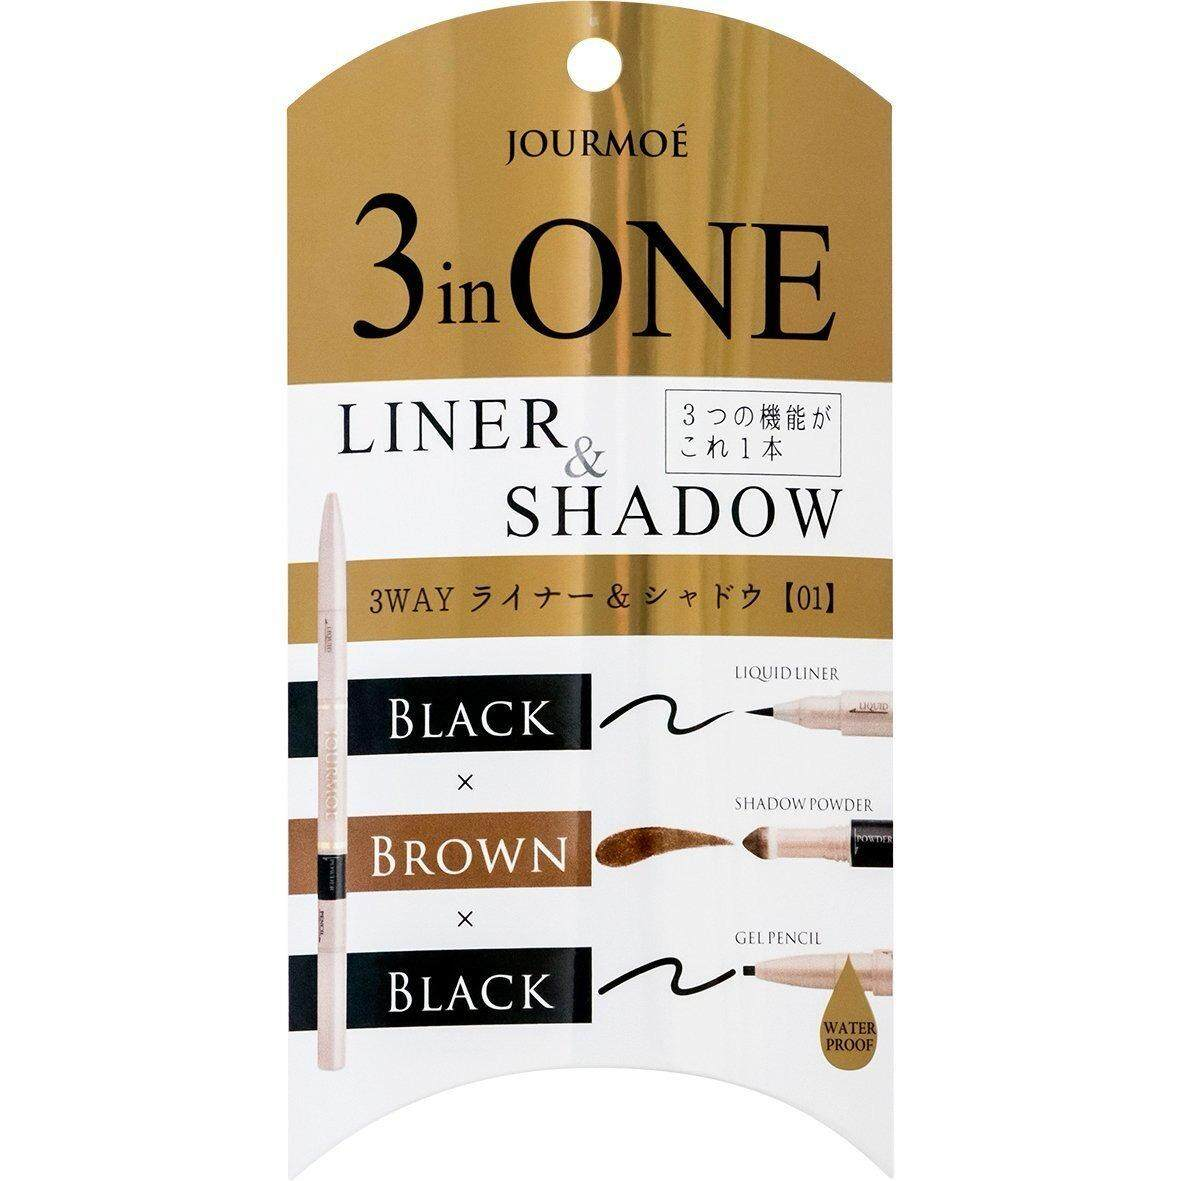 JOURMOE - 3 in One liner & shadow 01Basic/02 Girly/ 03 Natural/04 Casual - intl Philippines